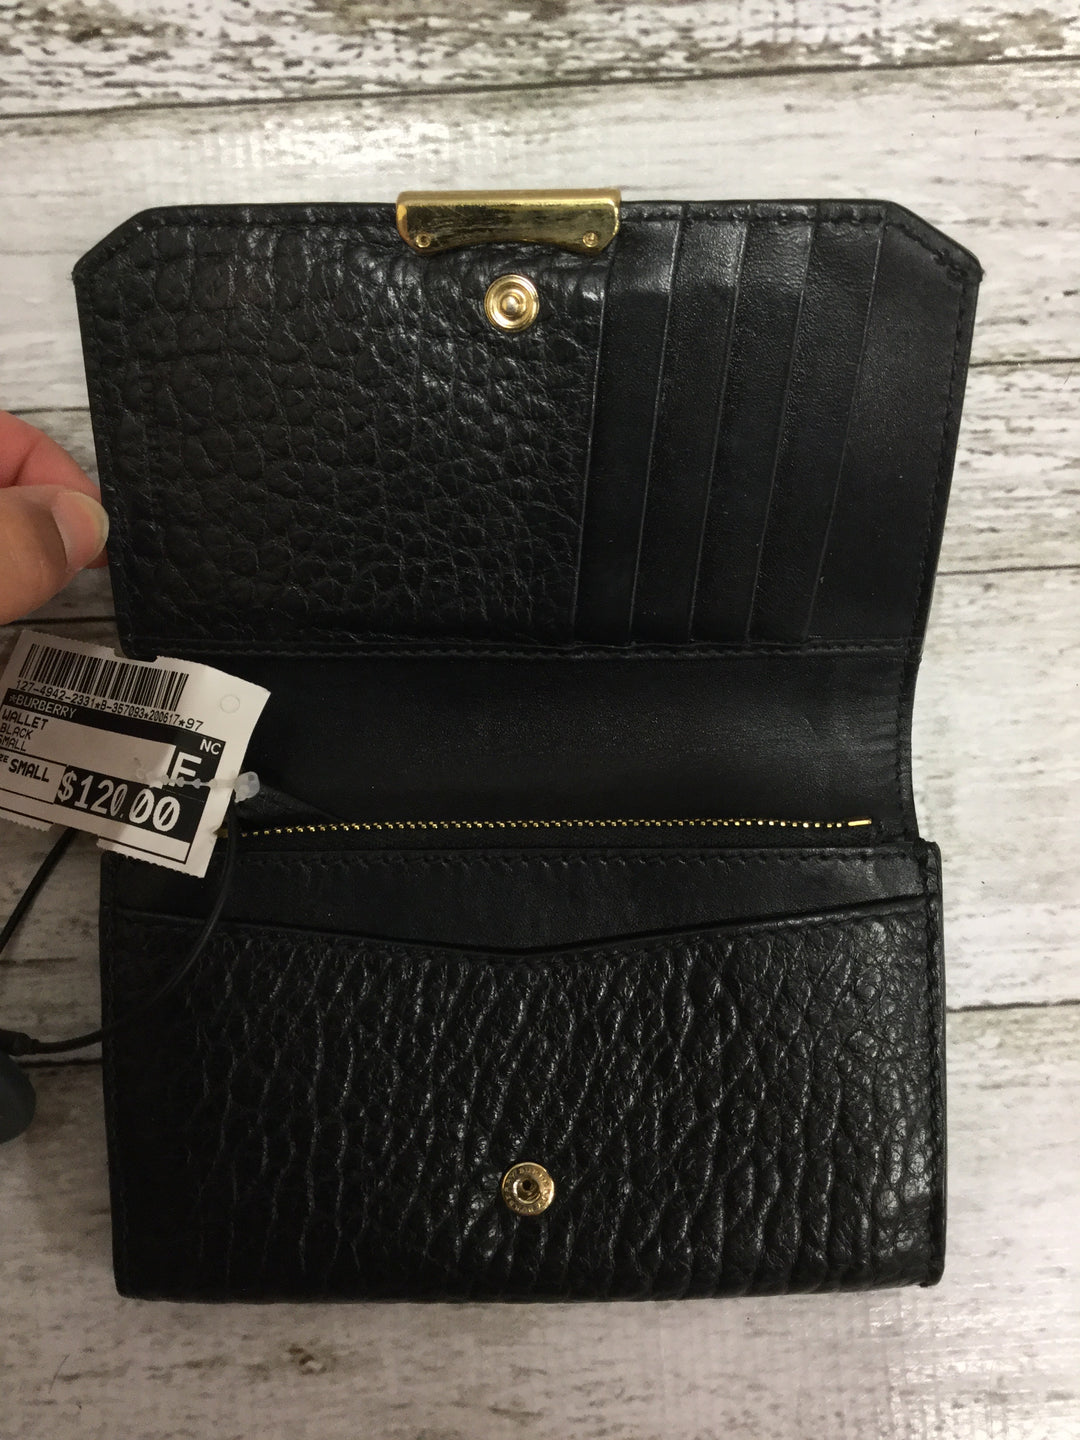 Photo #1 - <P>BRAND: BURBERRY , STYLE: WALLET , COLOR: BLACK , SIZE: SMALL , SKU: 127-4942-2331</P> <P>THIS BURBERRY WALLET IS VERY GENTLY USED AND IN GREAT CONDITION. IT HAS SEVERAL CARD SLOTS AND SPACE FOR BOTH CHANGE AND CASH. </P>